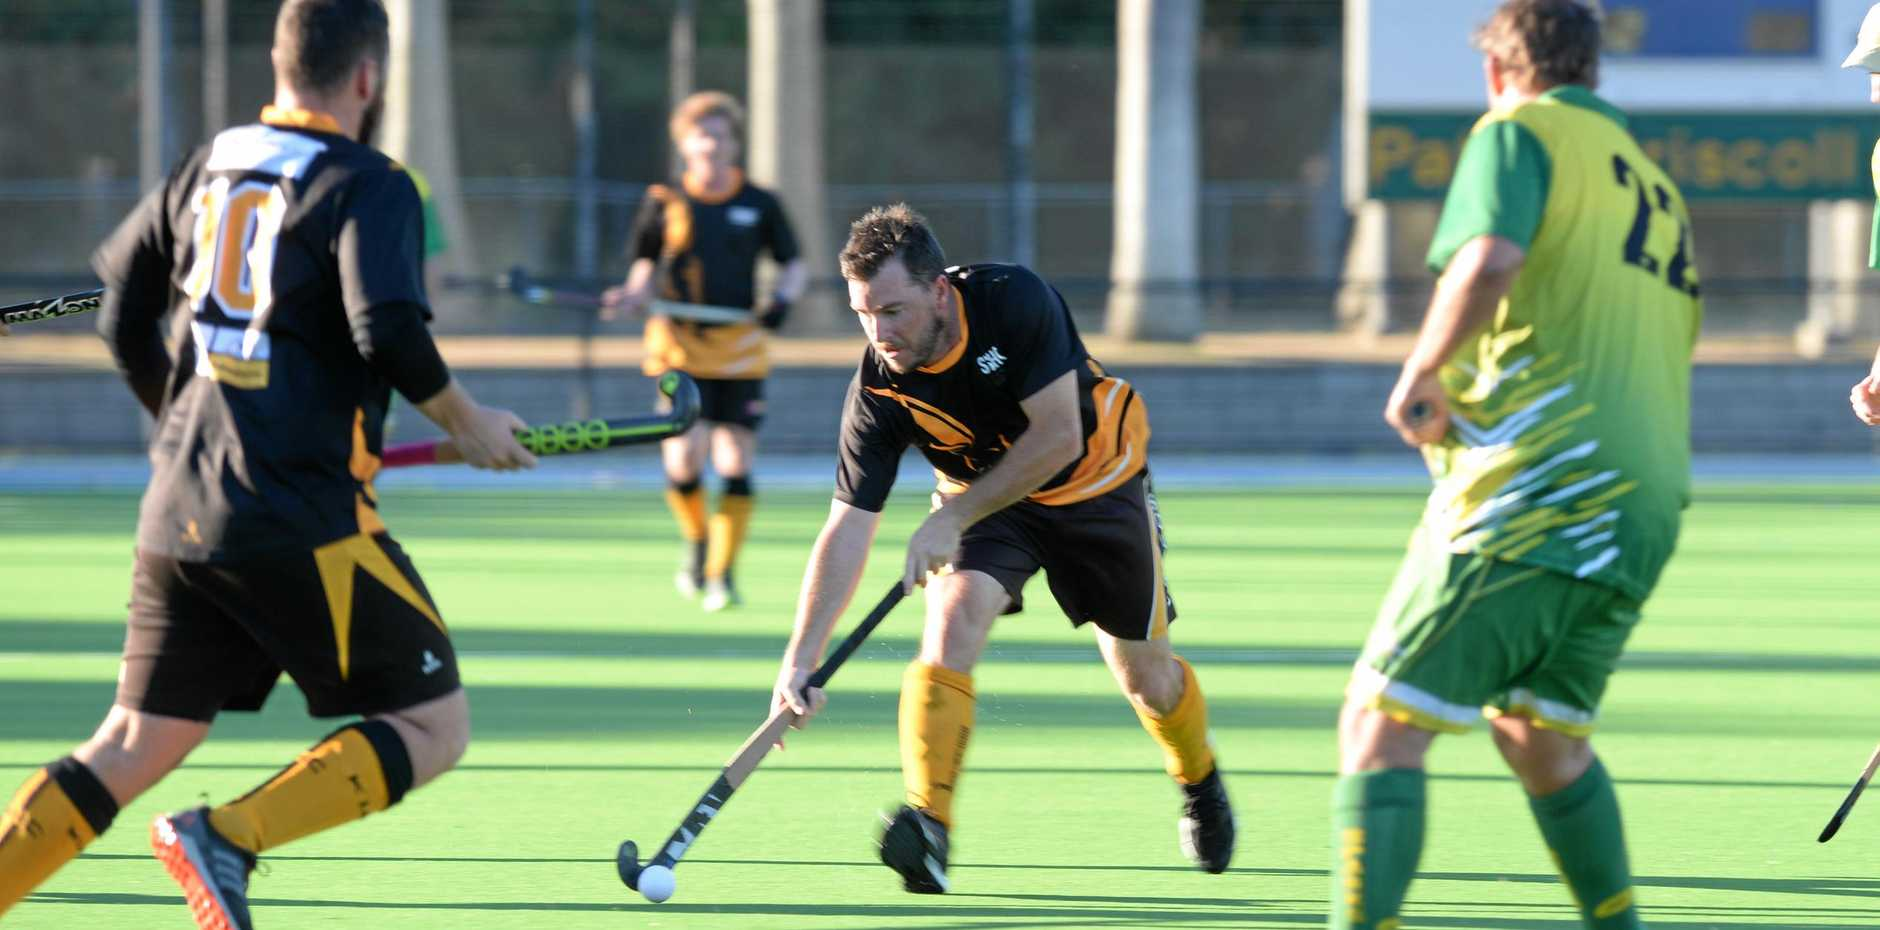 ON TARGET: Southern Suburbs' striker Steven Snell slotted three goals in his team's big win over Sparks at Kalka Shades on Saturday.